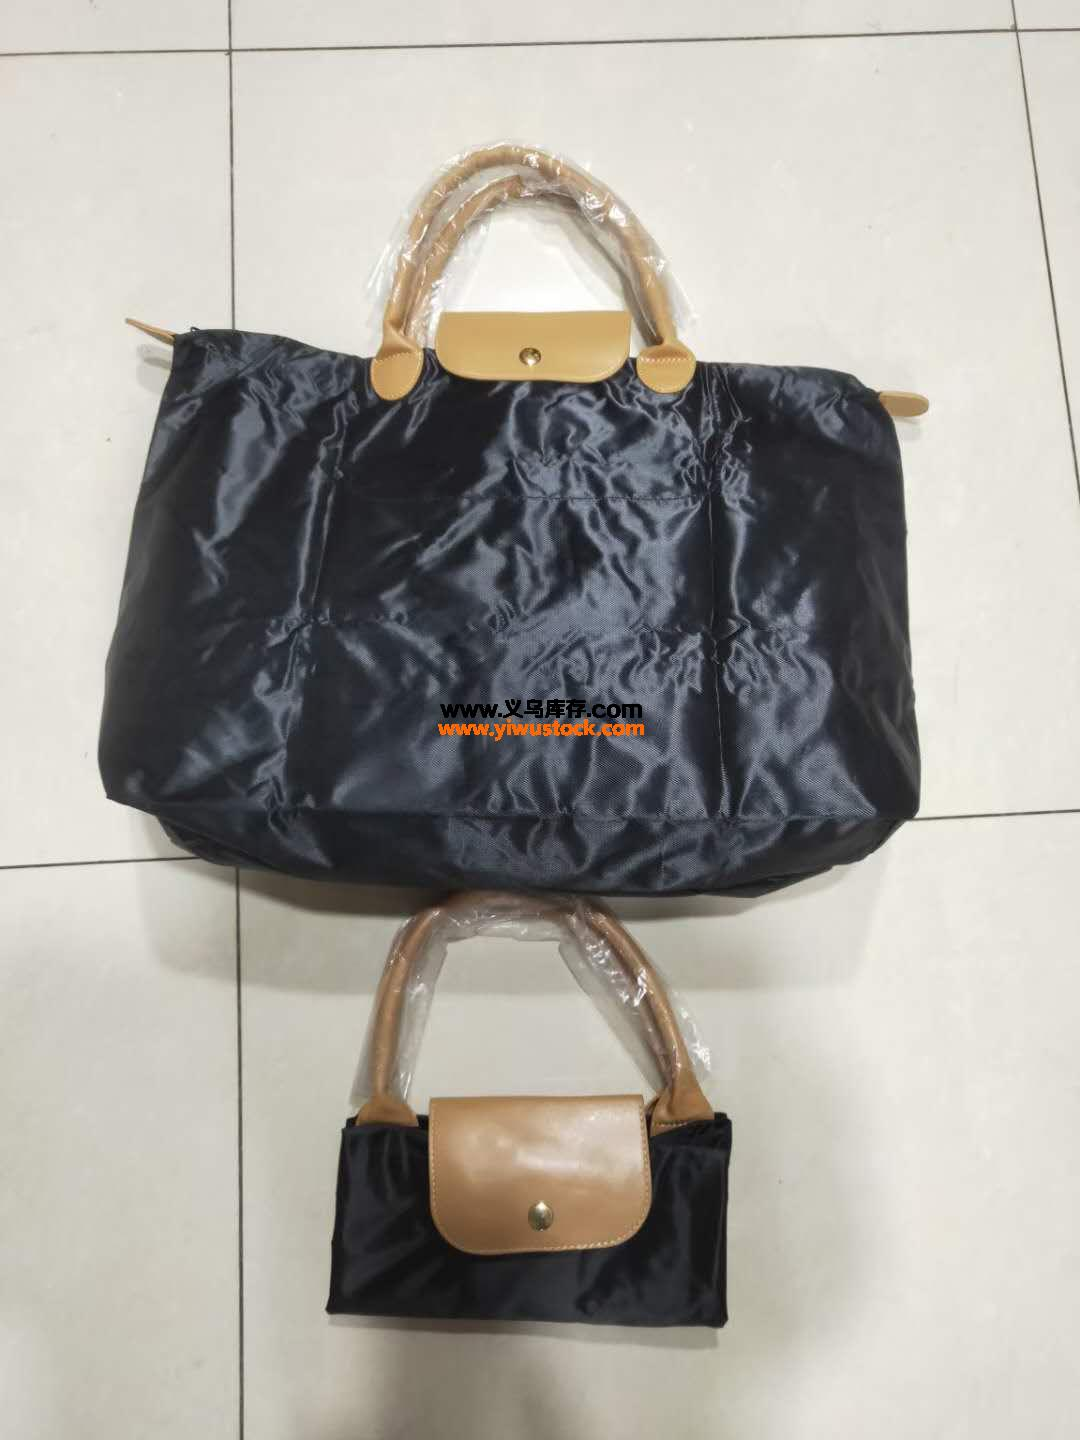 折叠包890个低价处理 Folding bag 890 low price handles